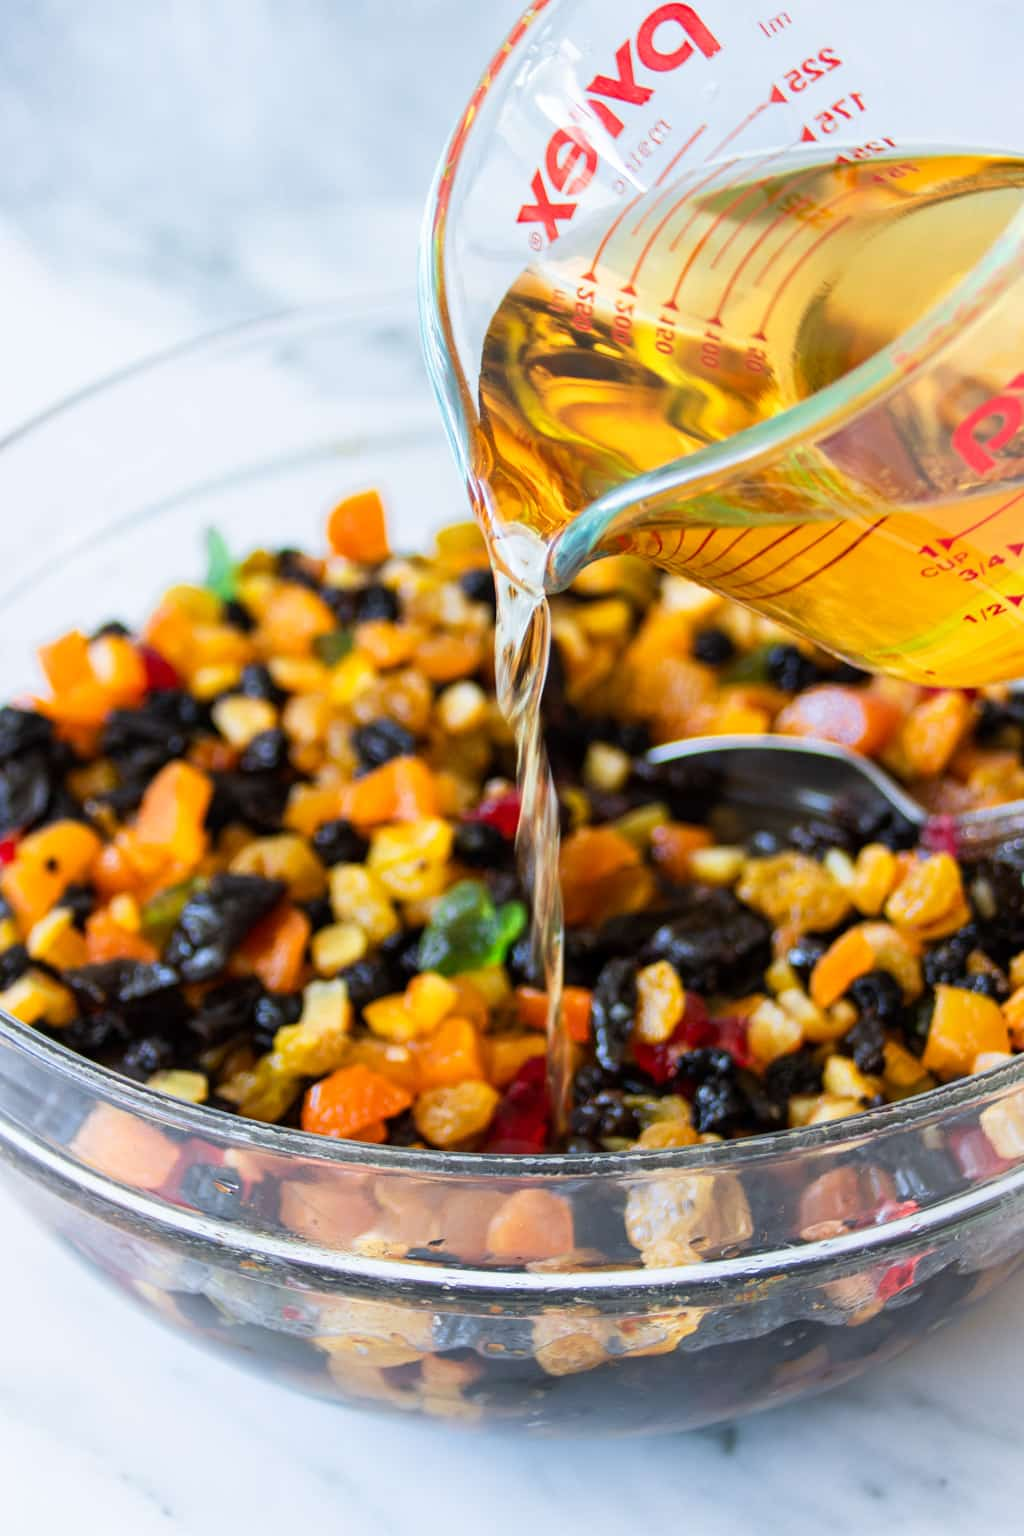 Soaking dried fruit mix in rum for fruit cake